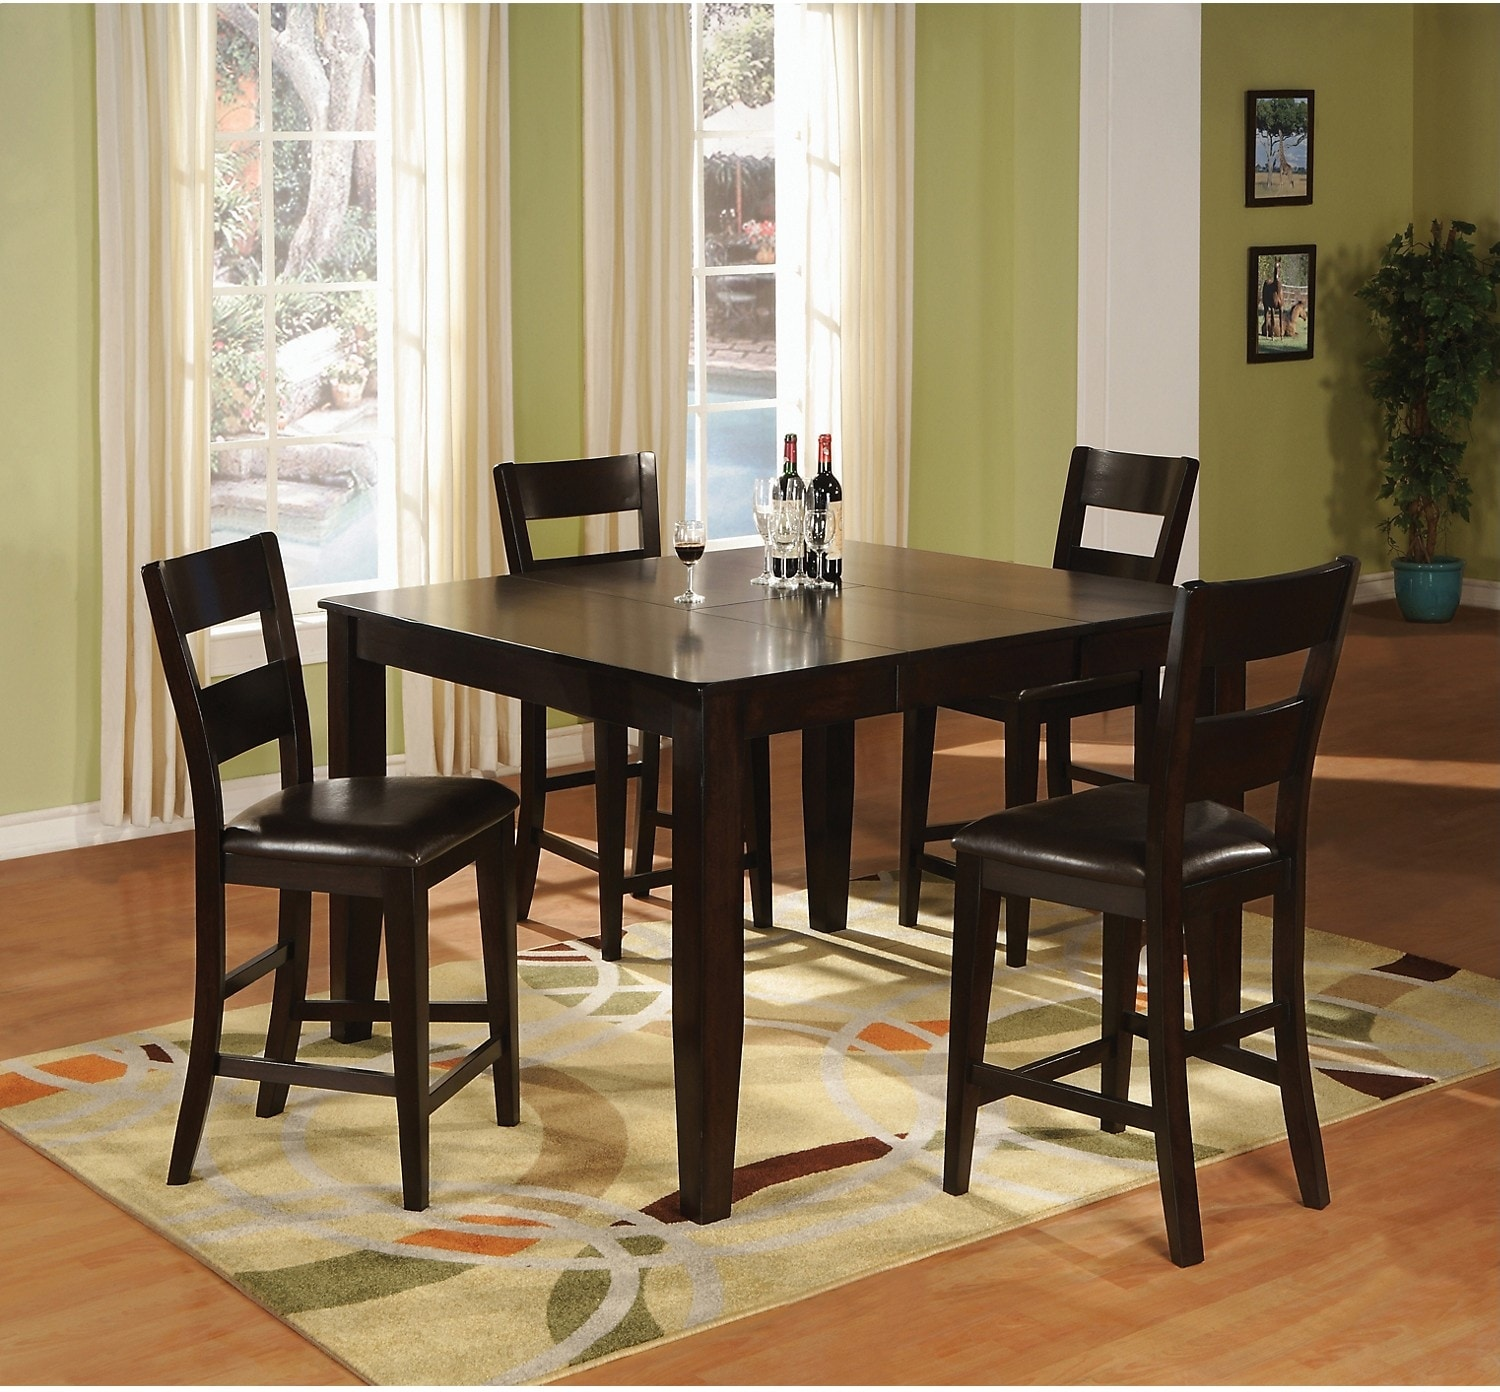 Dining Room Furniture - Dakota 5 Piece Counter-Height Dining Package